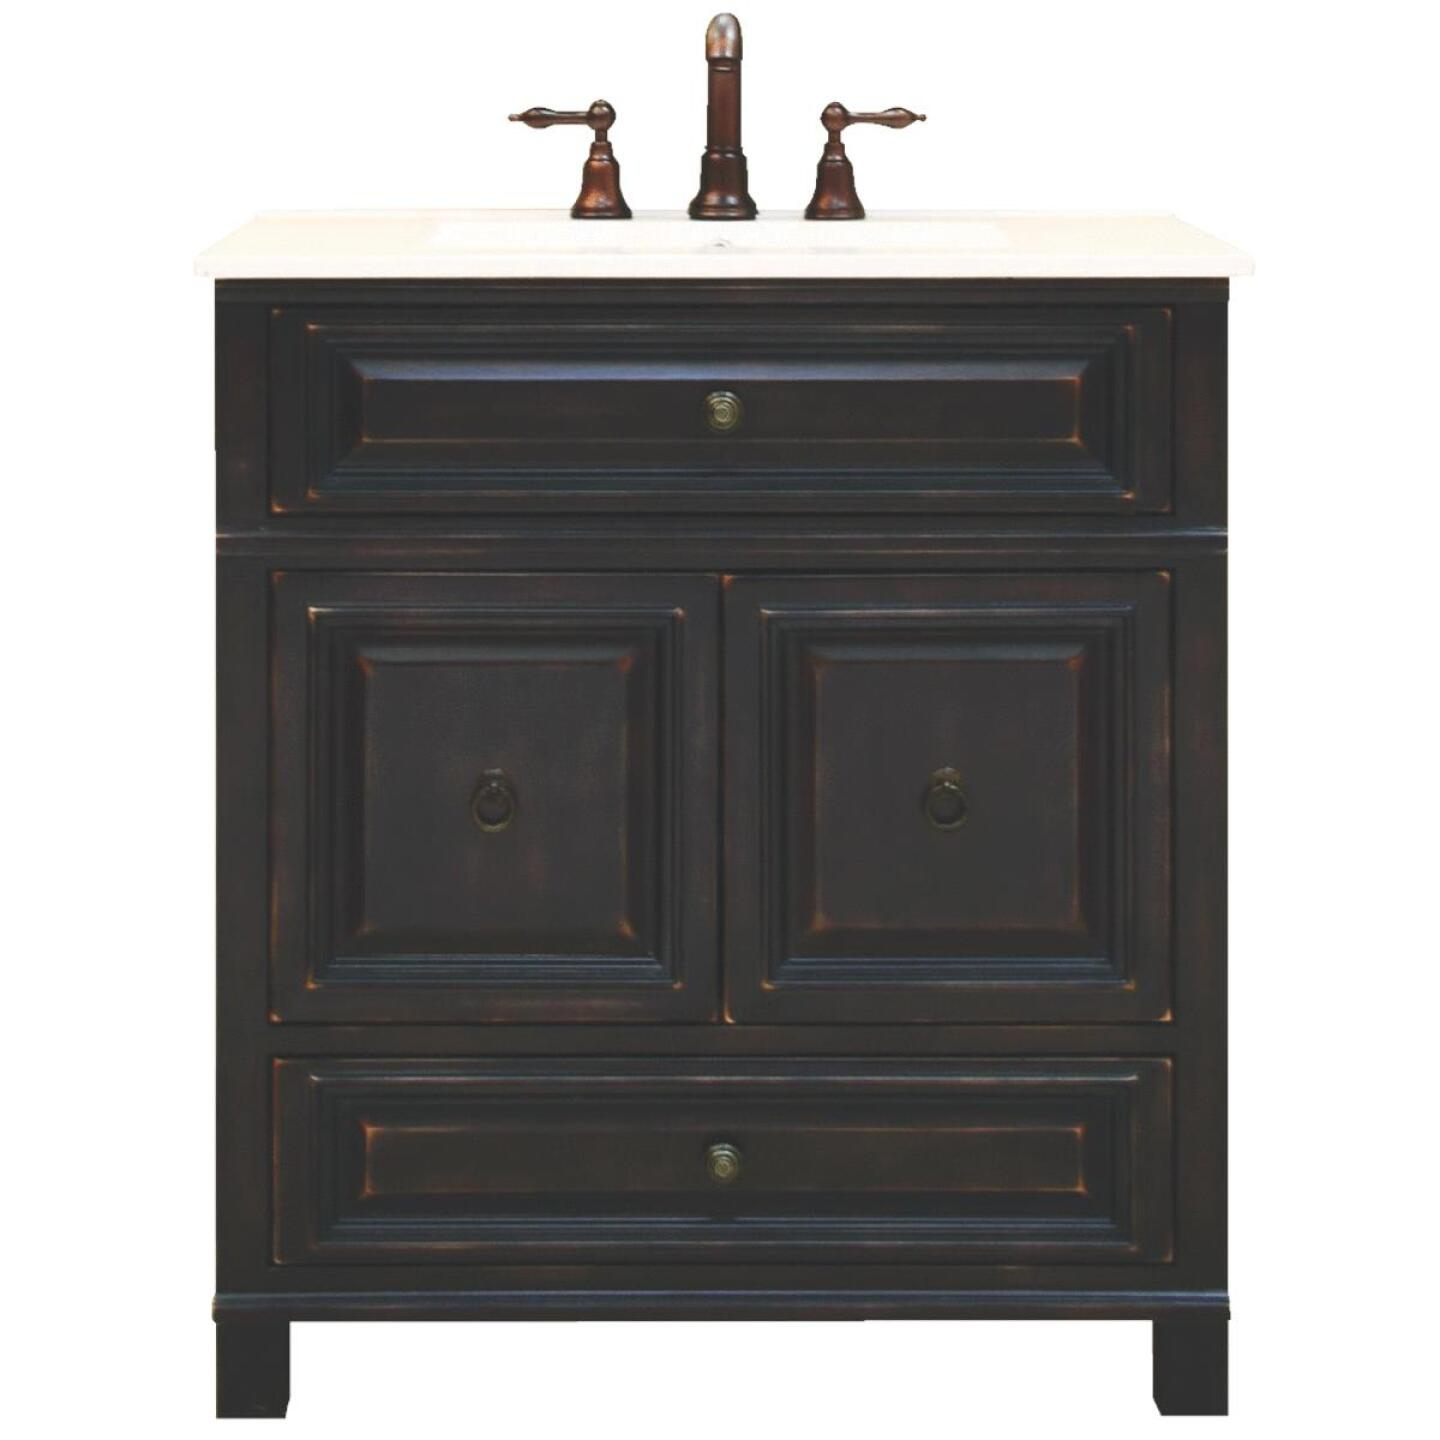 Sunny Wood Barton Hill Black Onyx 30 In. W x 34 In. H x 21 In. D Vanity Base, 2 Door/1 Drawer Image 231